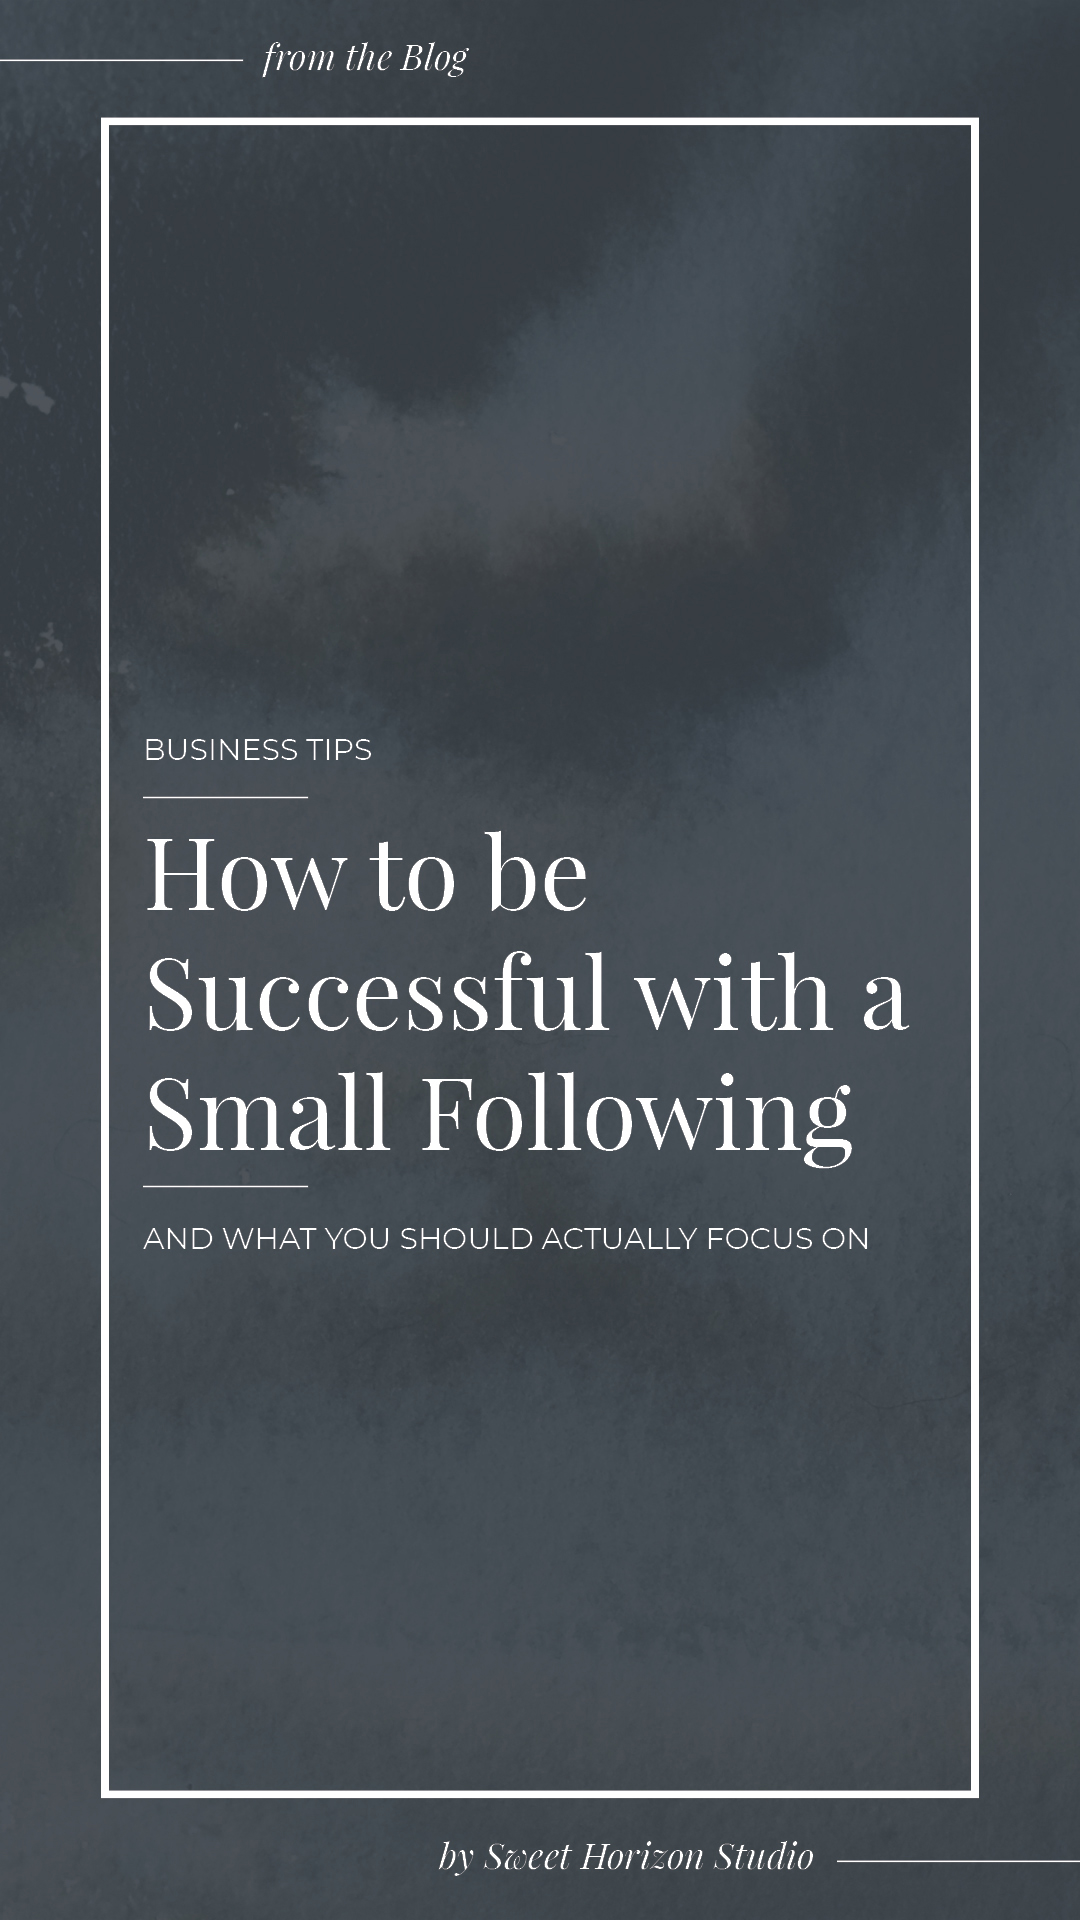 How to Be Successful With a Small Following from www.sweethorizonblog.com